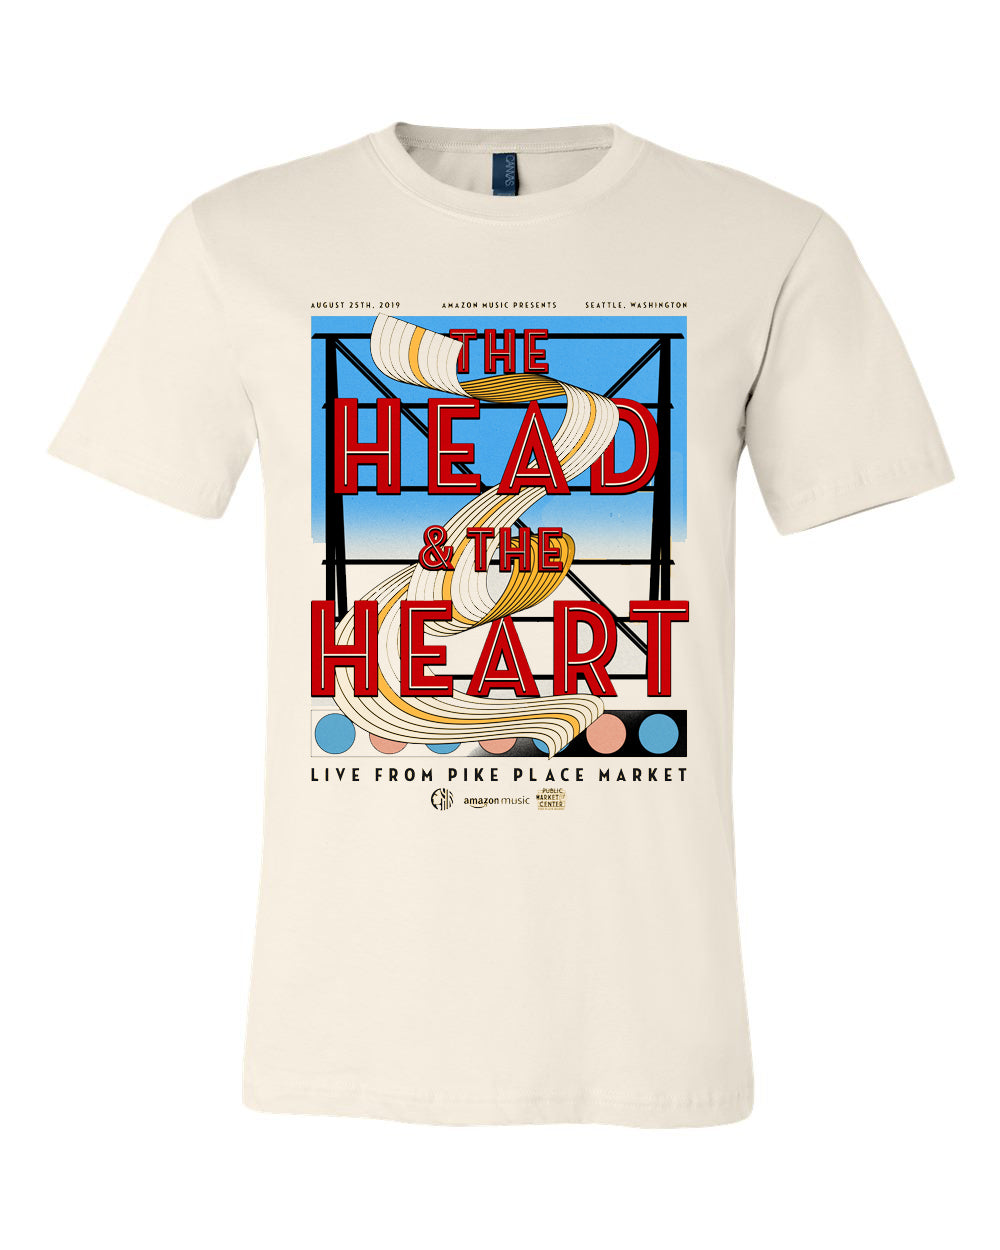 The Head And The Heart live from Pike Place t-shirt